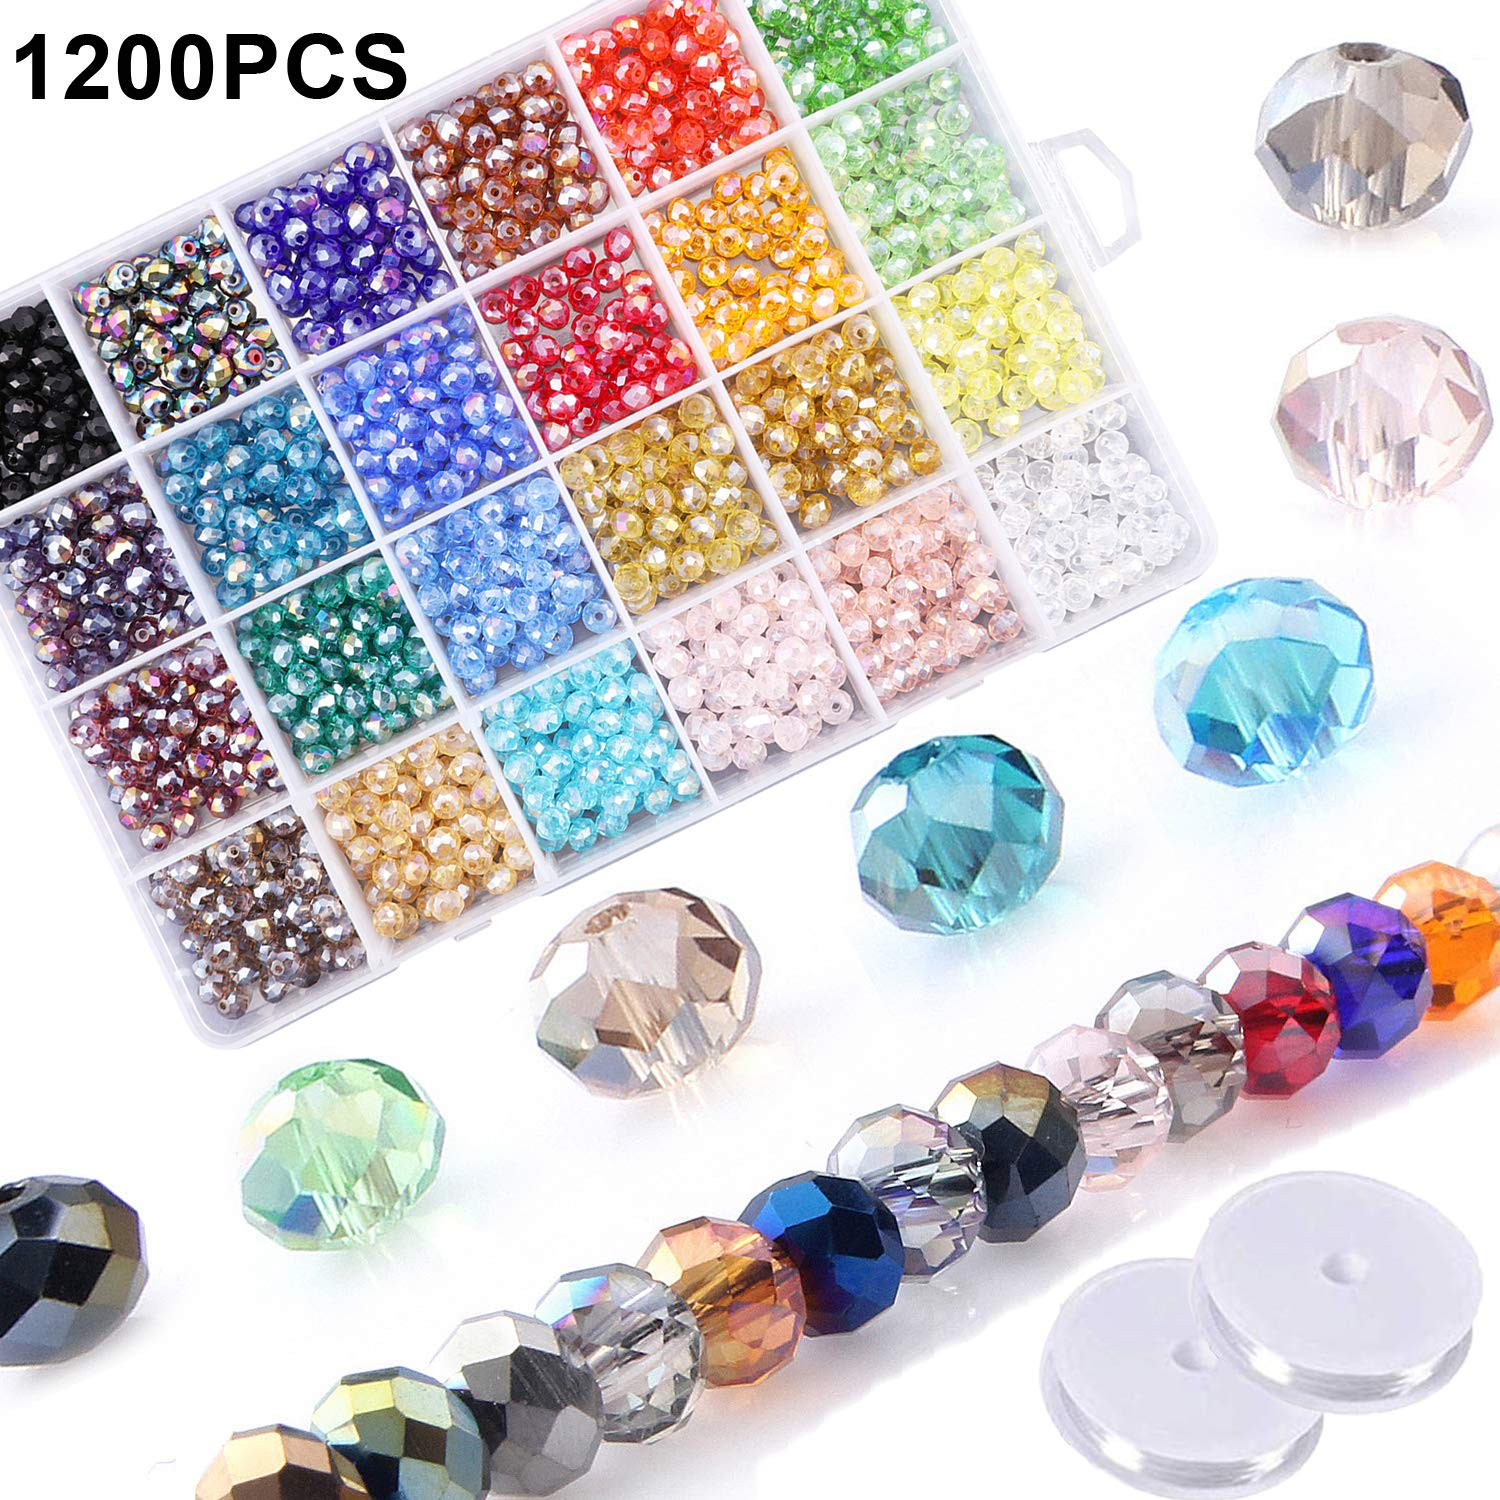 Forever Yung 100pcs Peacock Blue Bicone Faceted Crystal Glass Beads 4mm for Jewelry Making